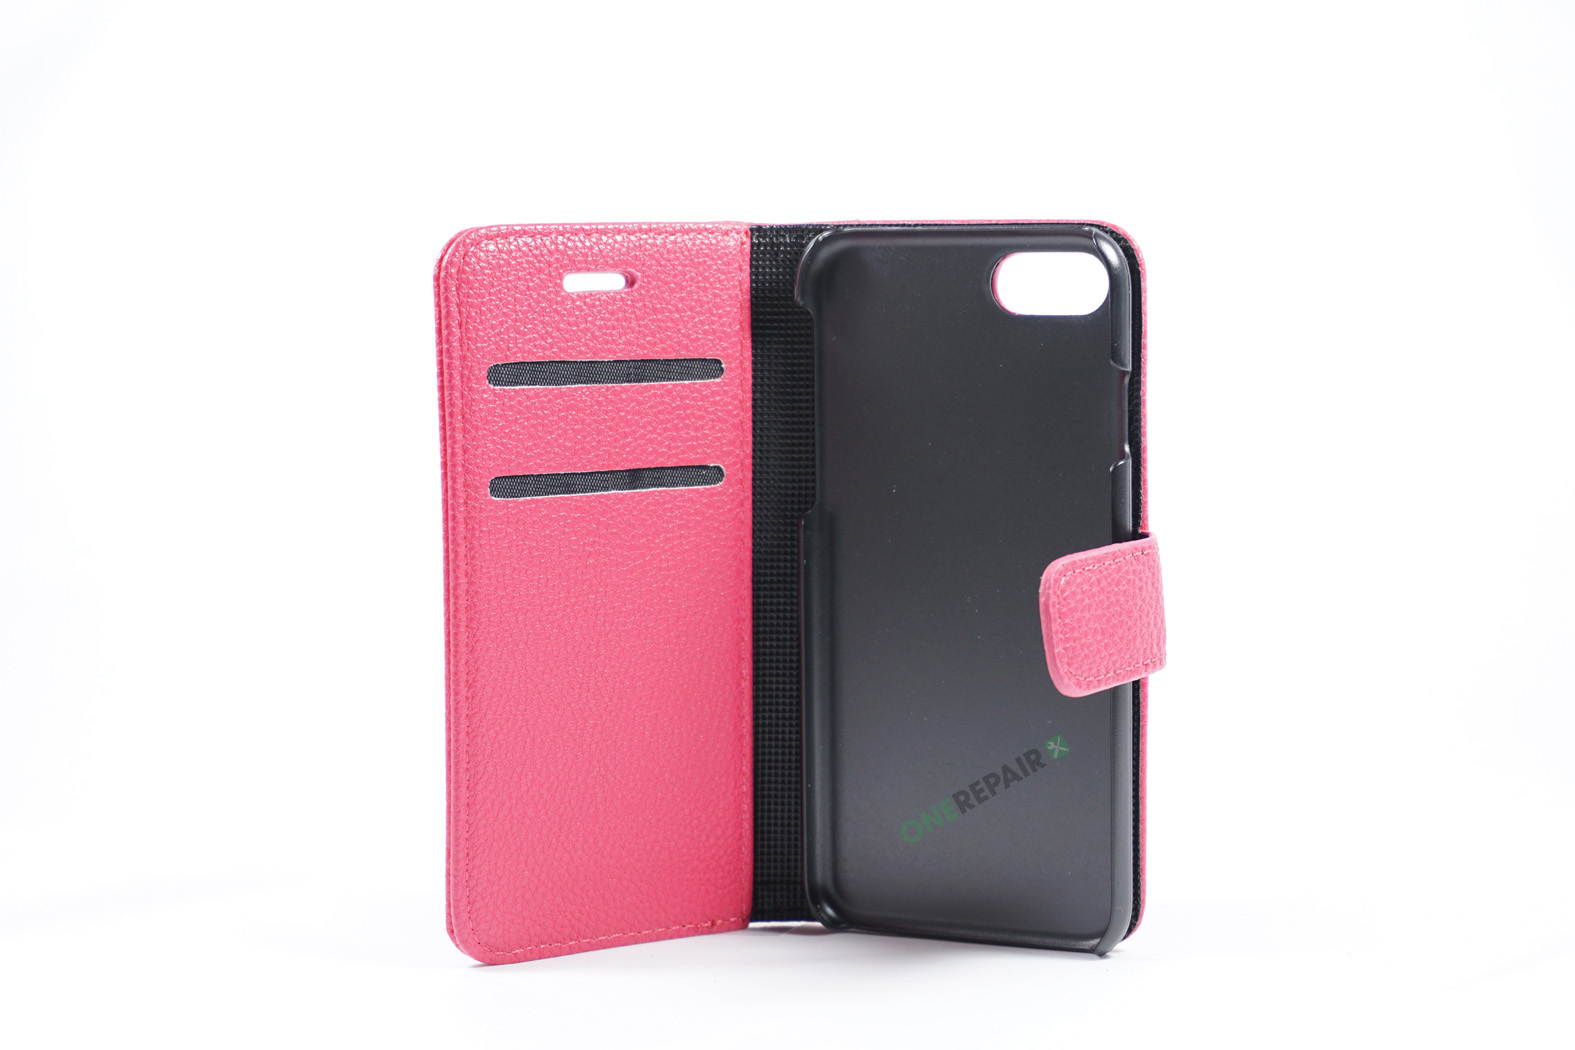 350829_iPhone_7_8_Flipcover_Bubble_Cover_Lyseroed_Pink_OneRepair_WM_00002